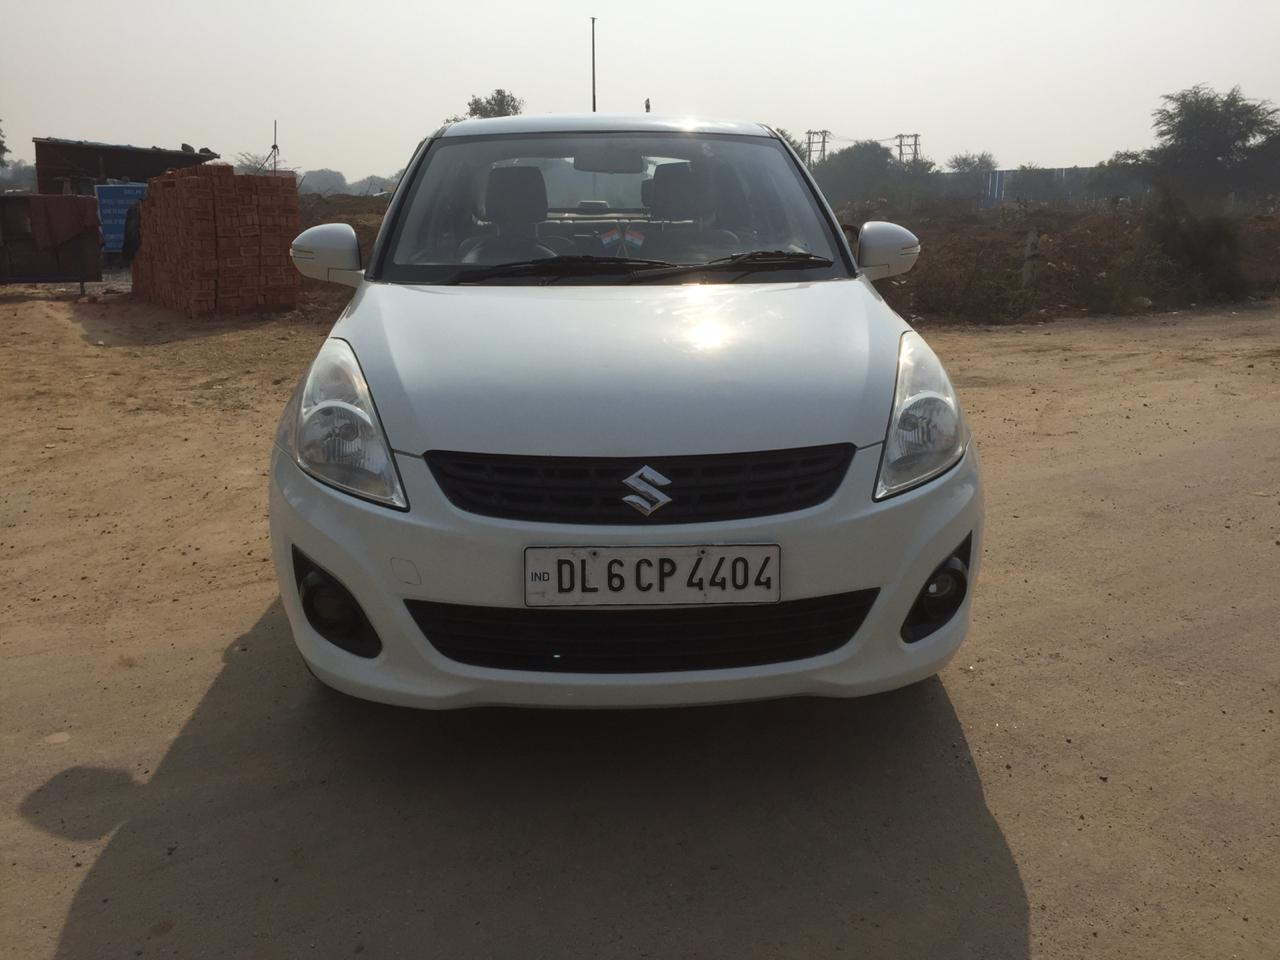 Secondhand Swift Dzire-Vdi car in Dwarka and Uttam Nagar